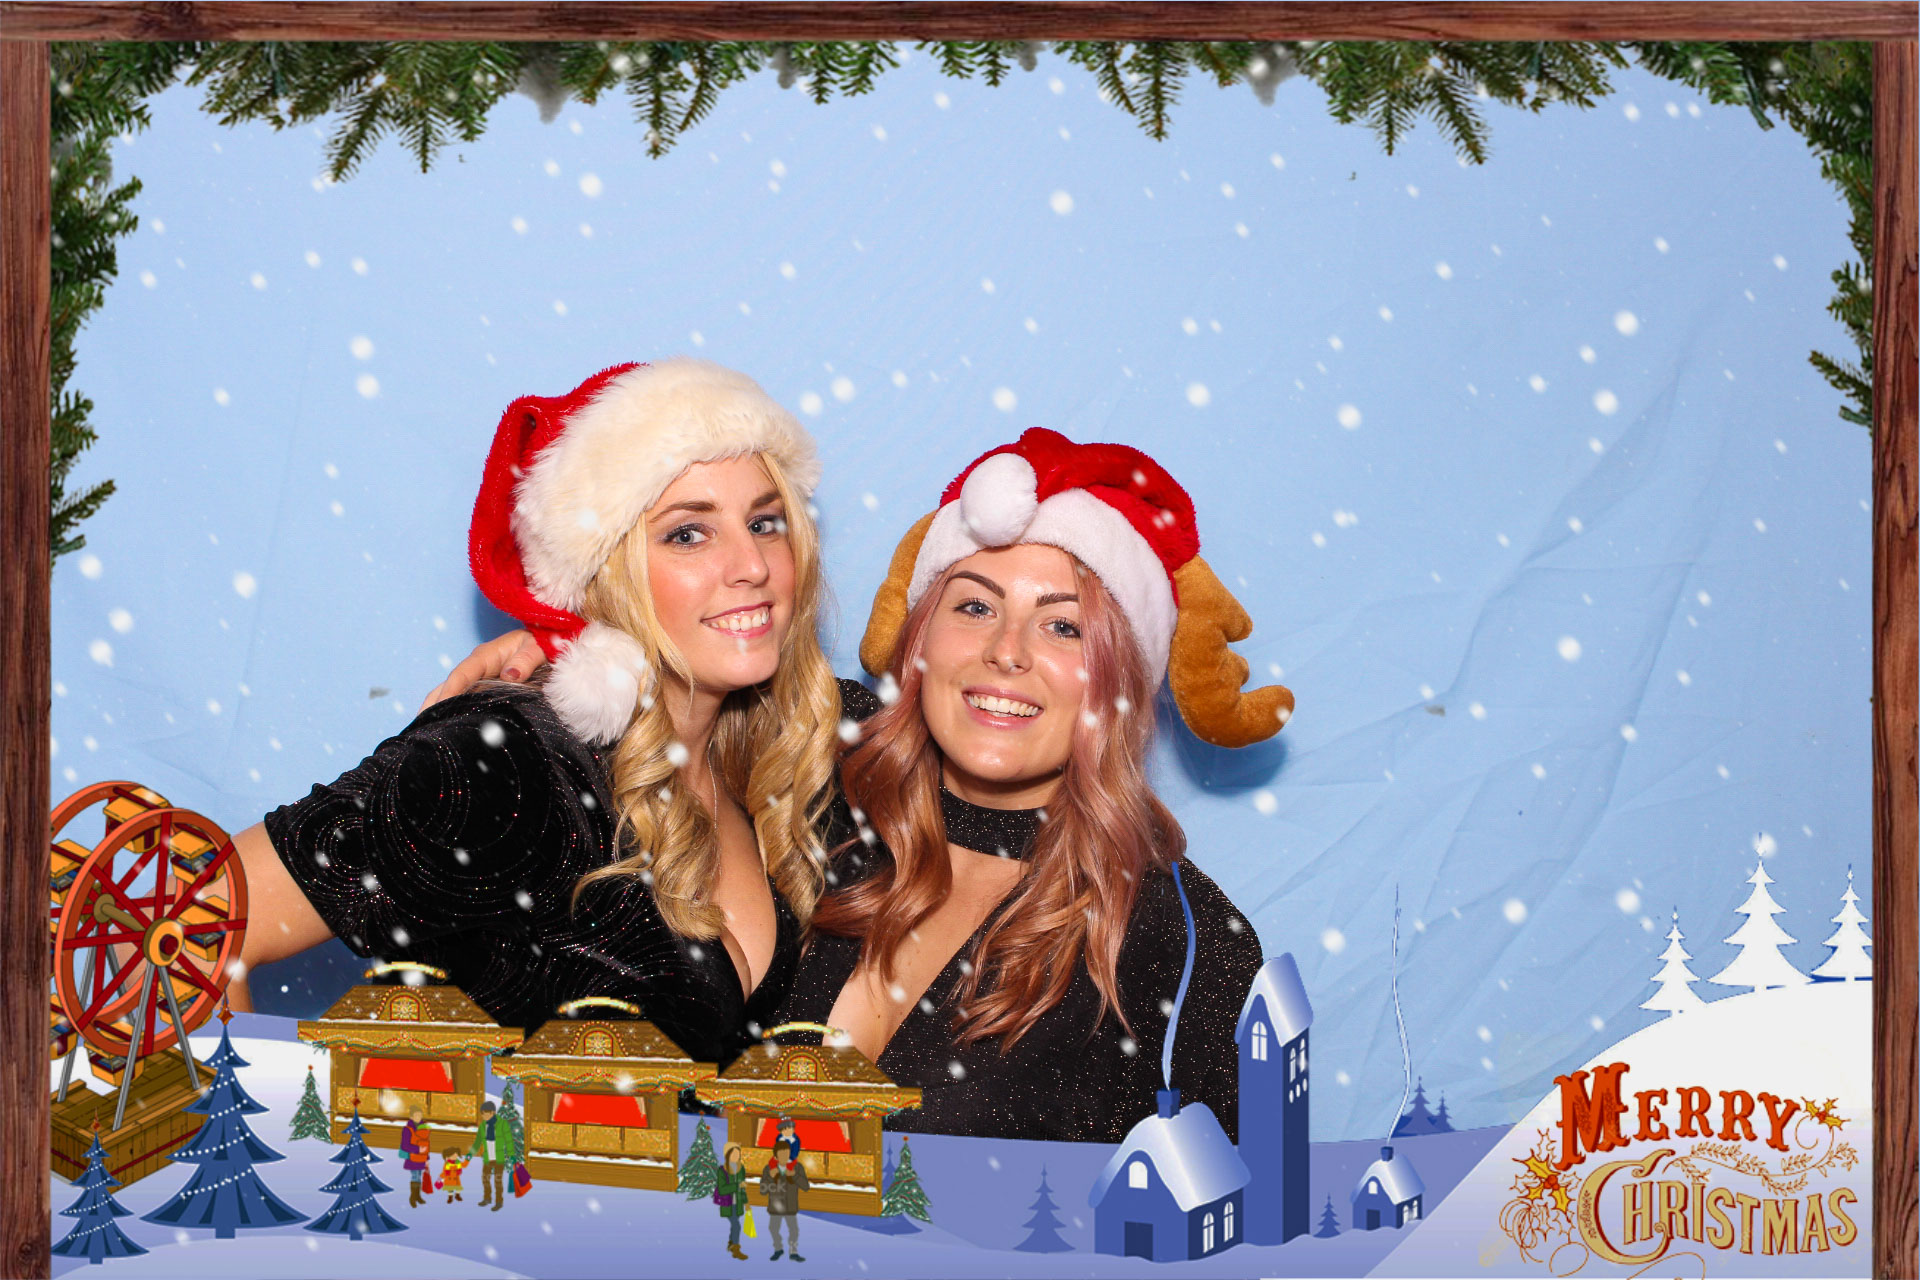 fotoauto photo booth hire-1.jpg